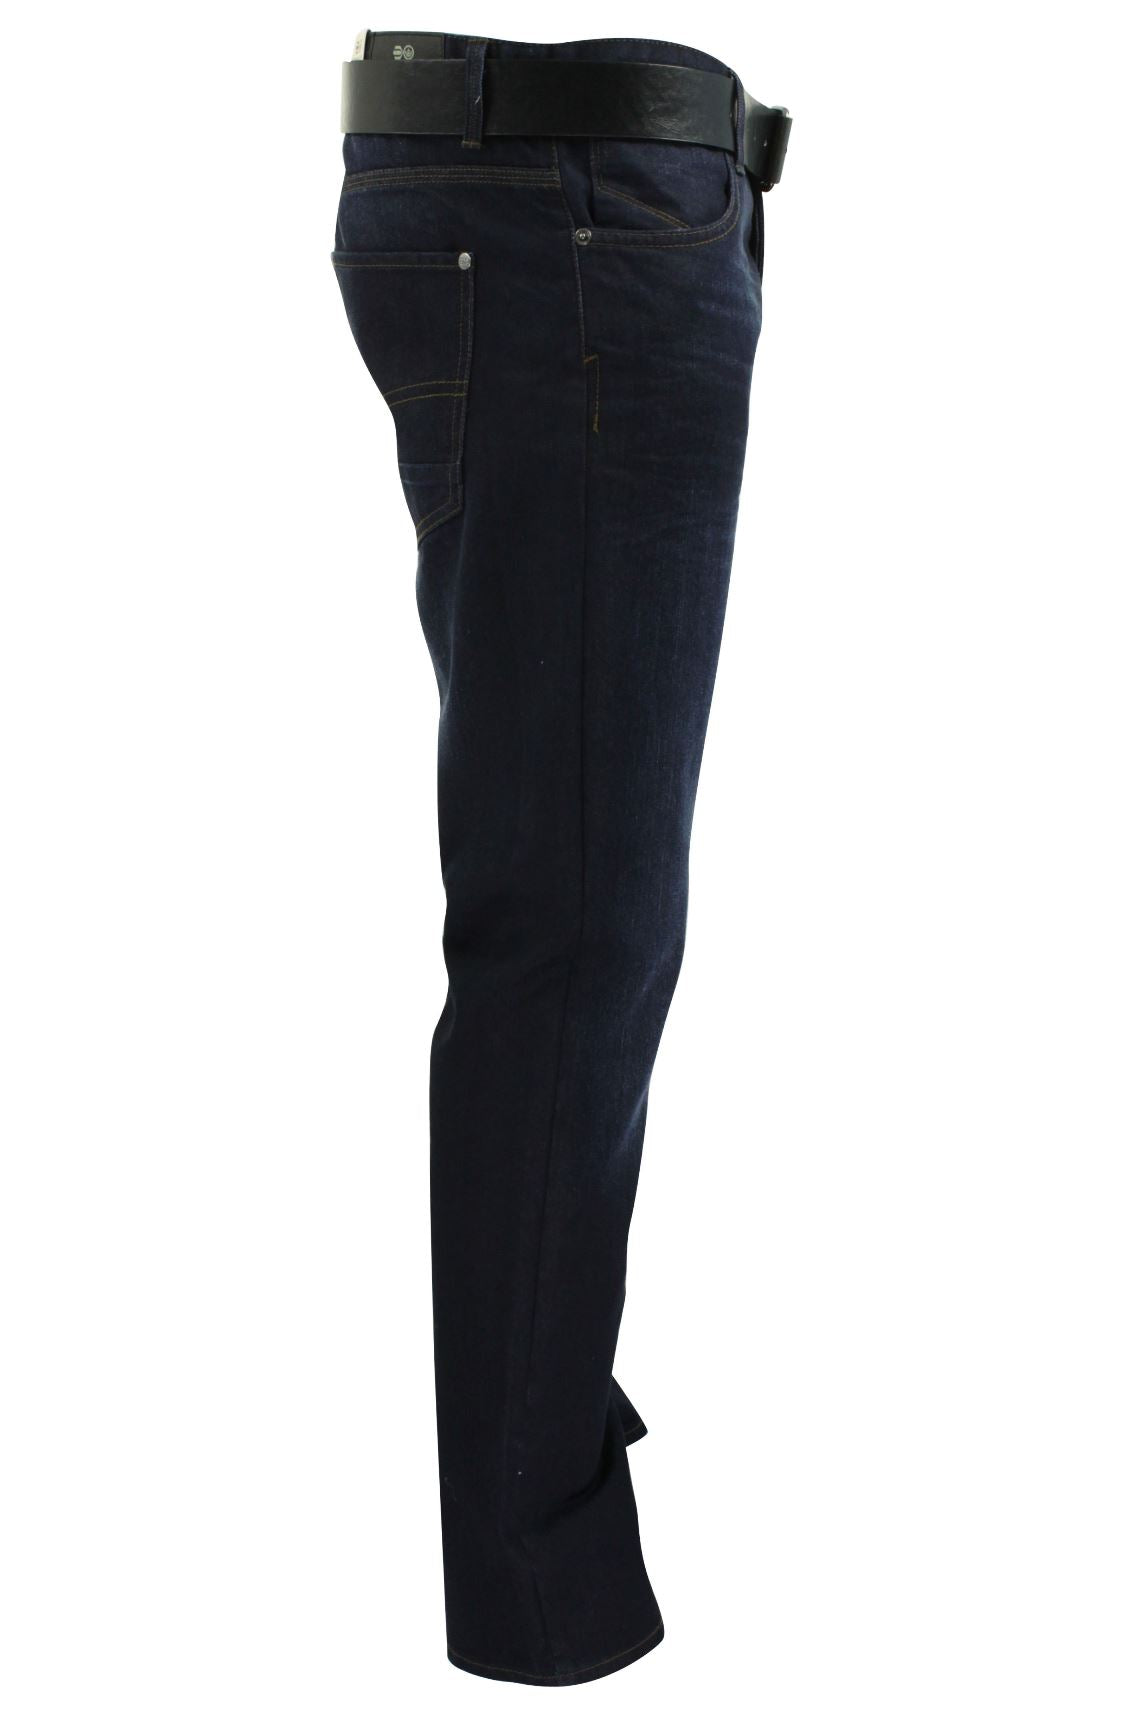 Mens Jeans by Crosshatch 'Wayne' Slim Fit-2